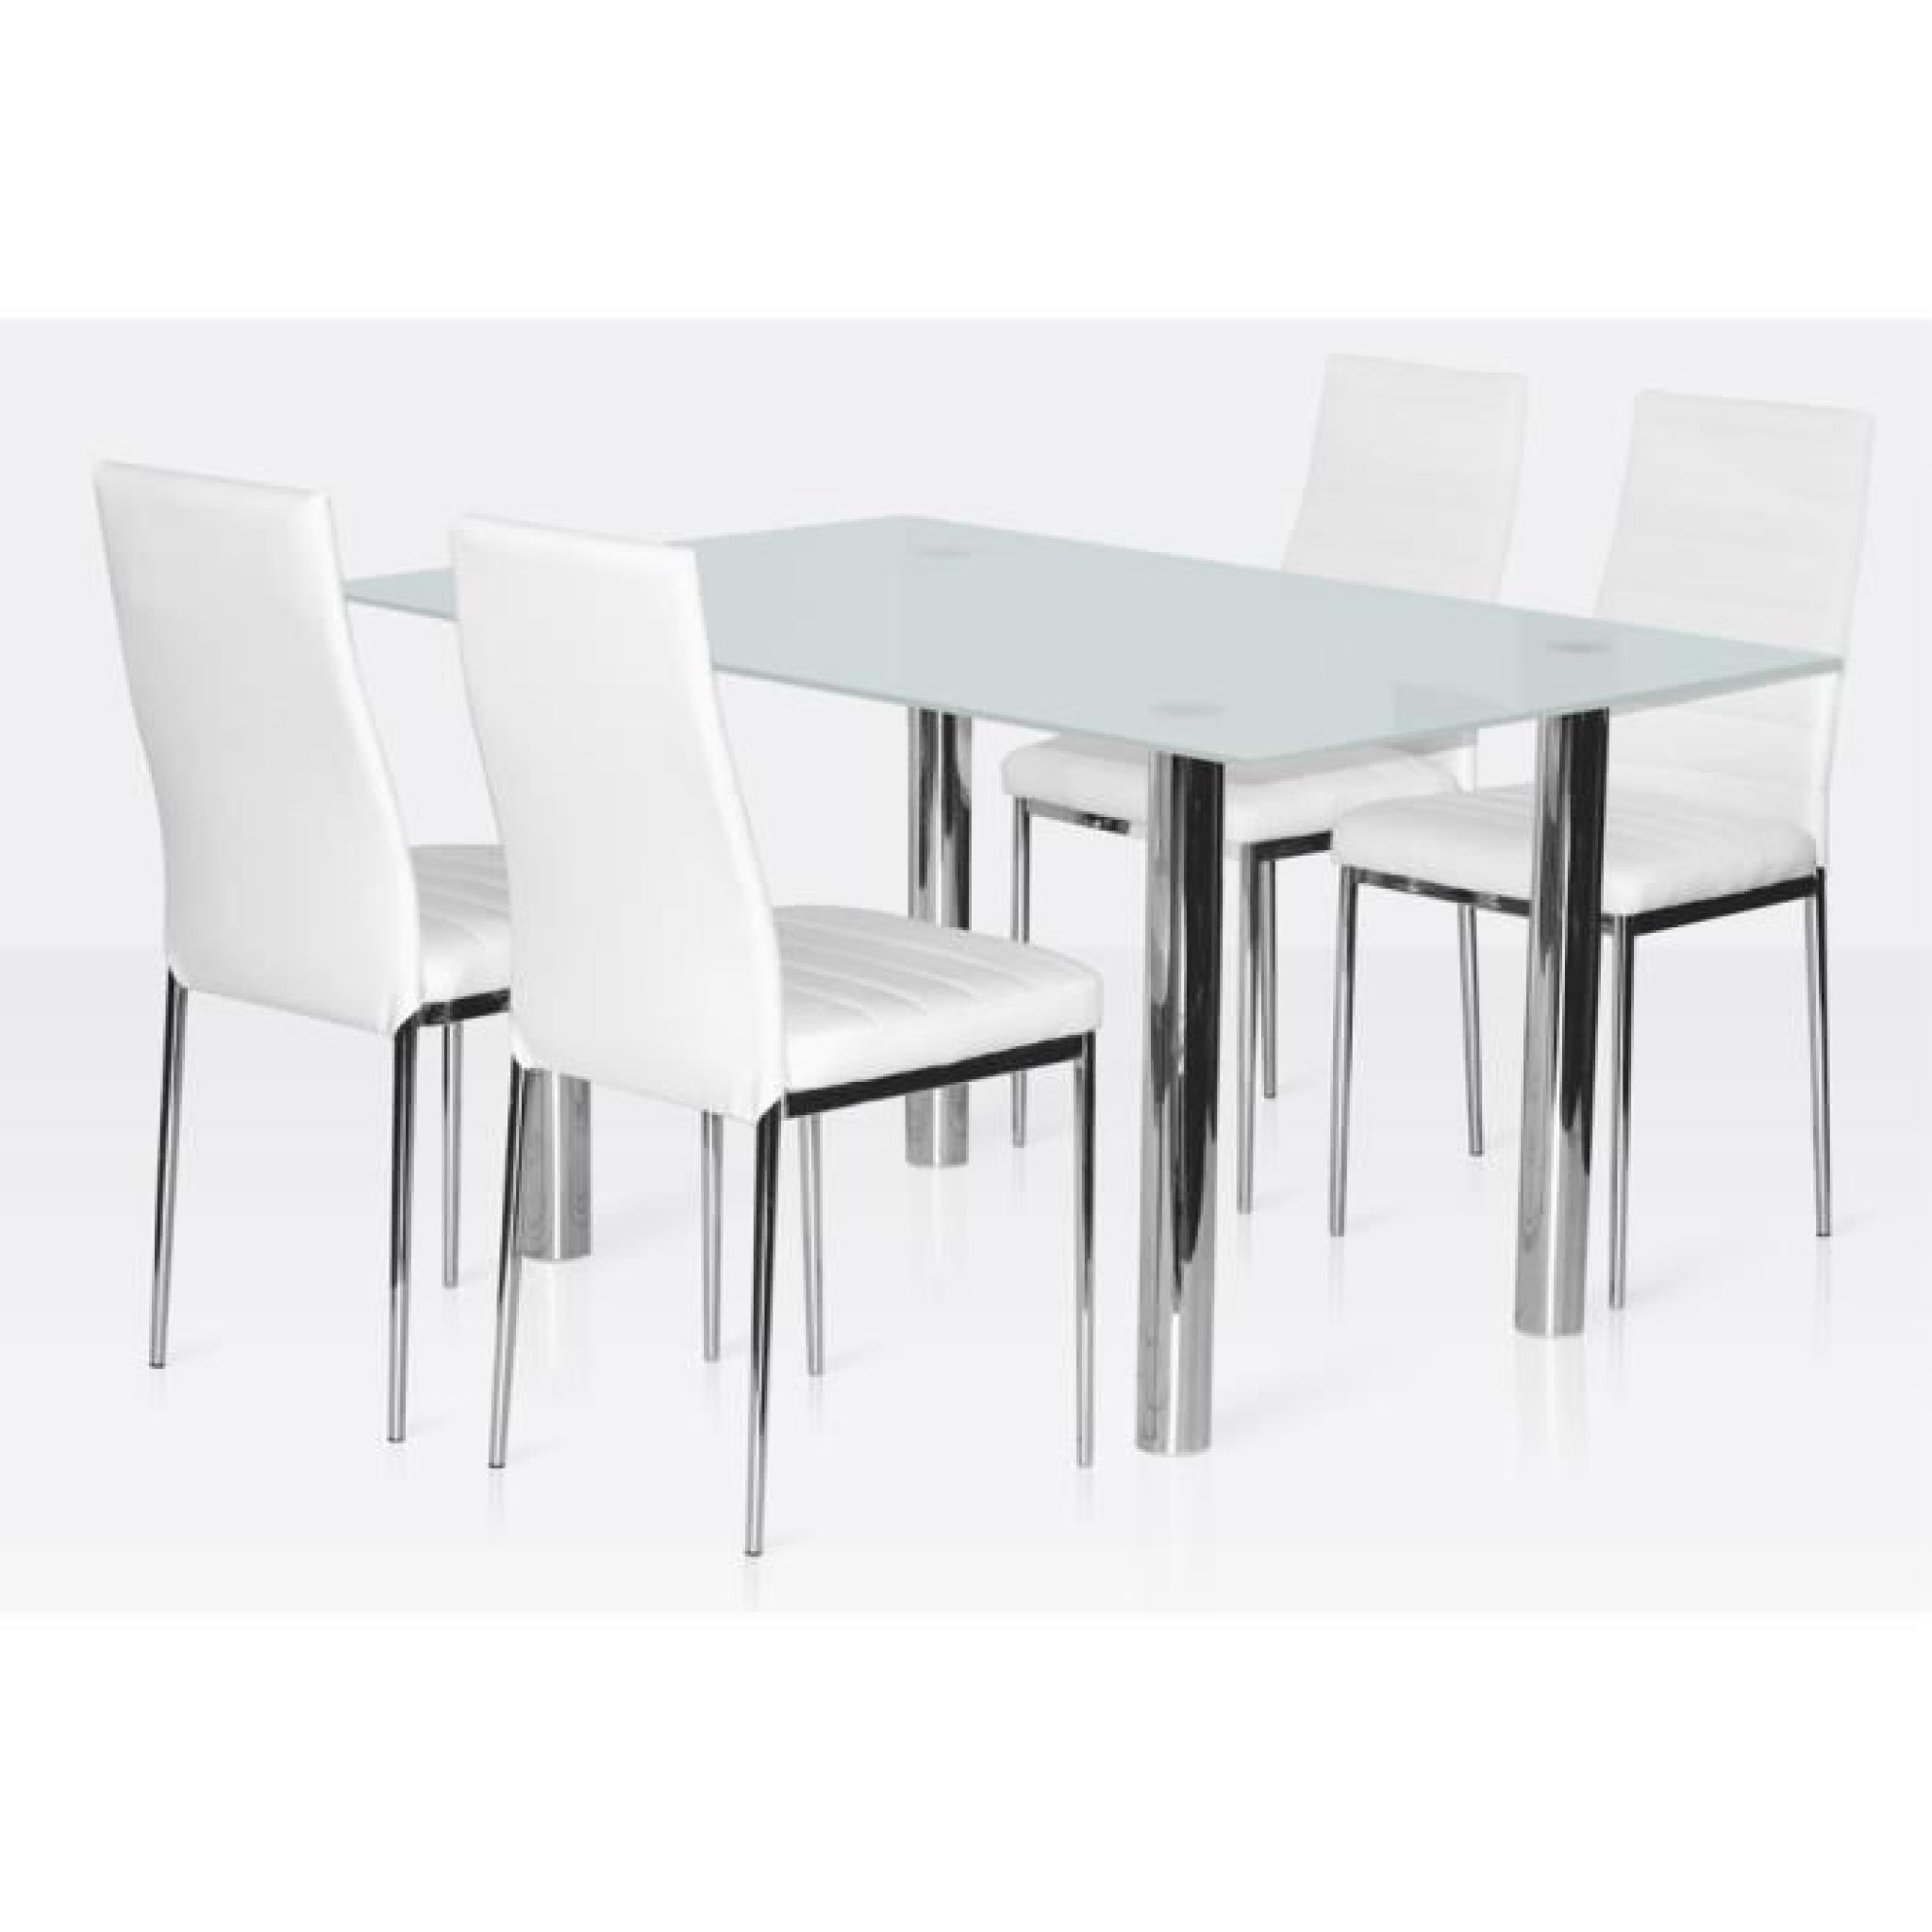 Ensemble salle manger 4 chaises table en verre blanc - Table a manger chaise ...